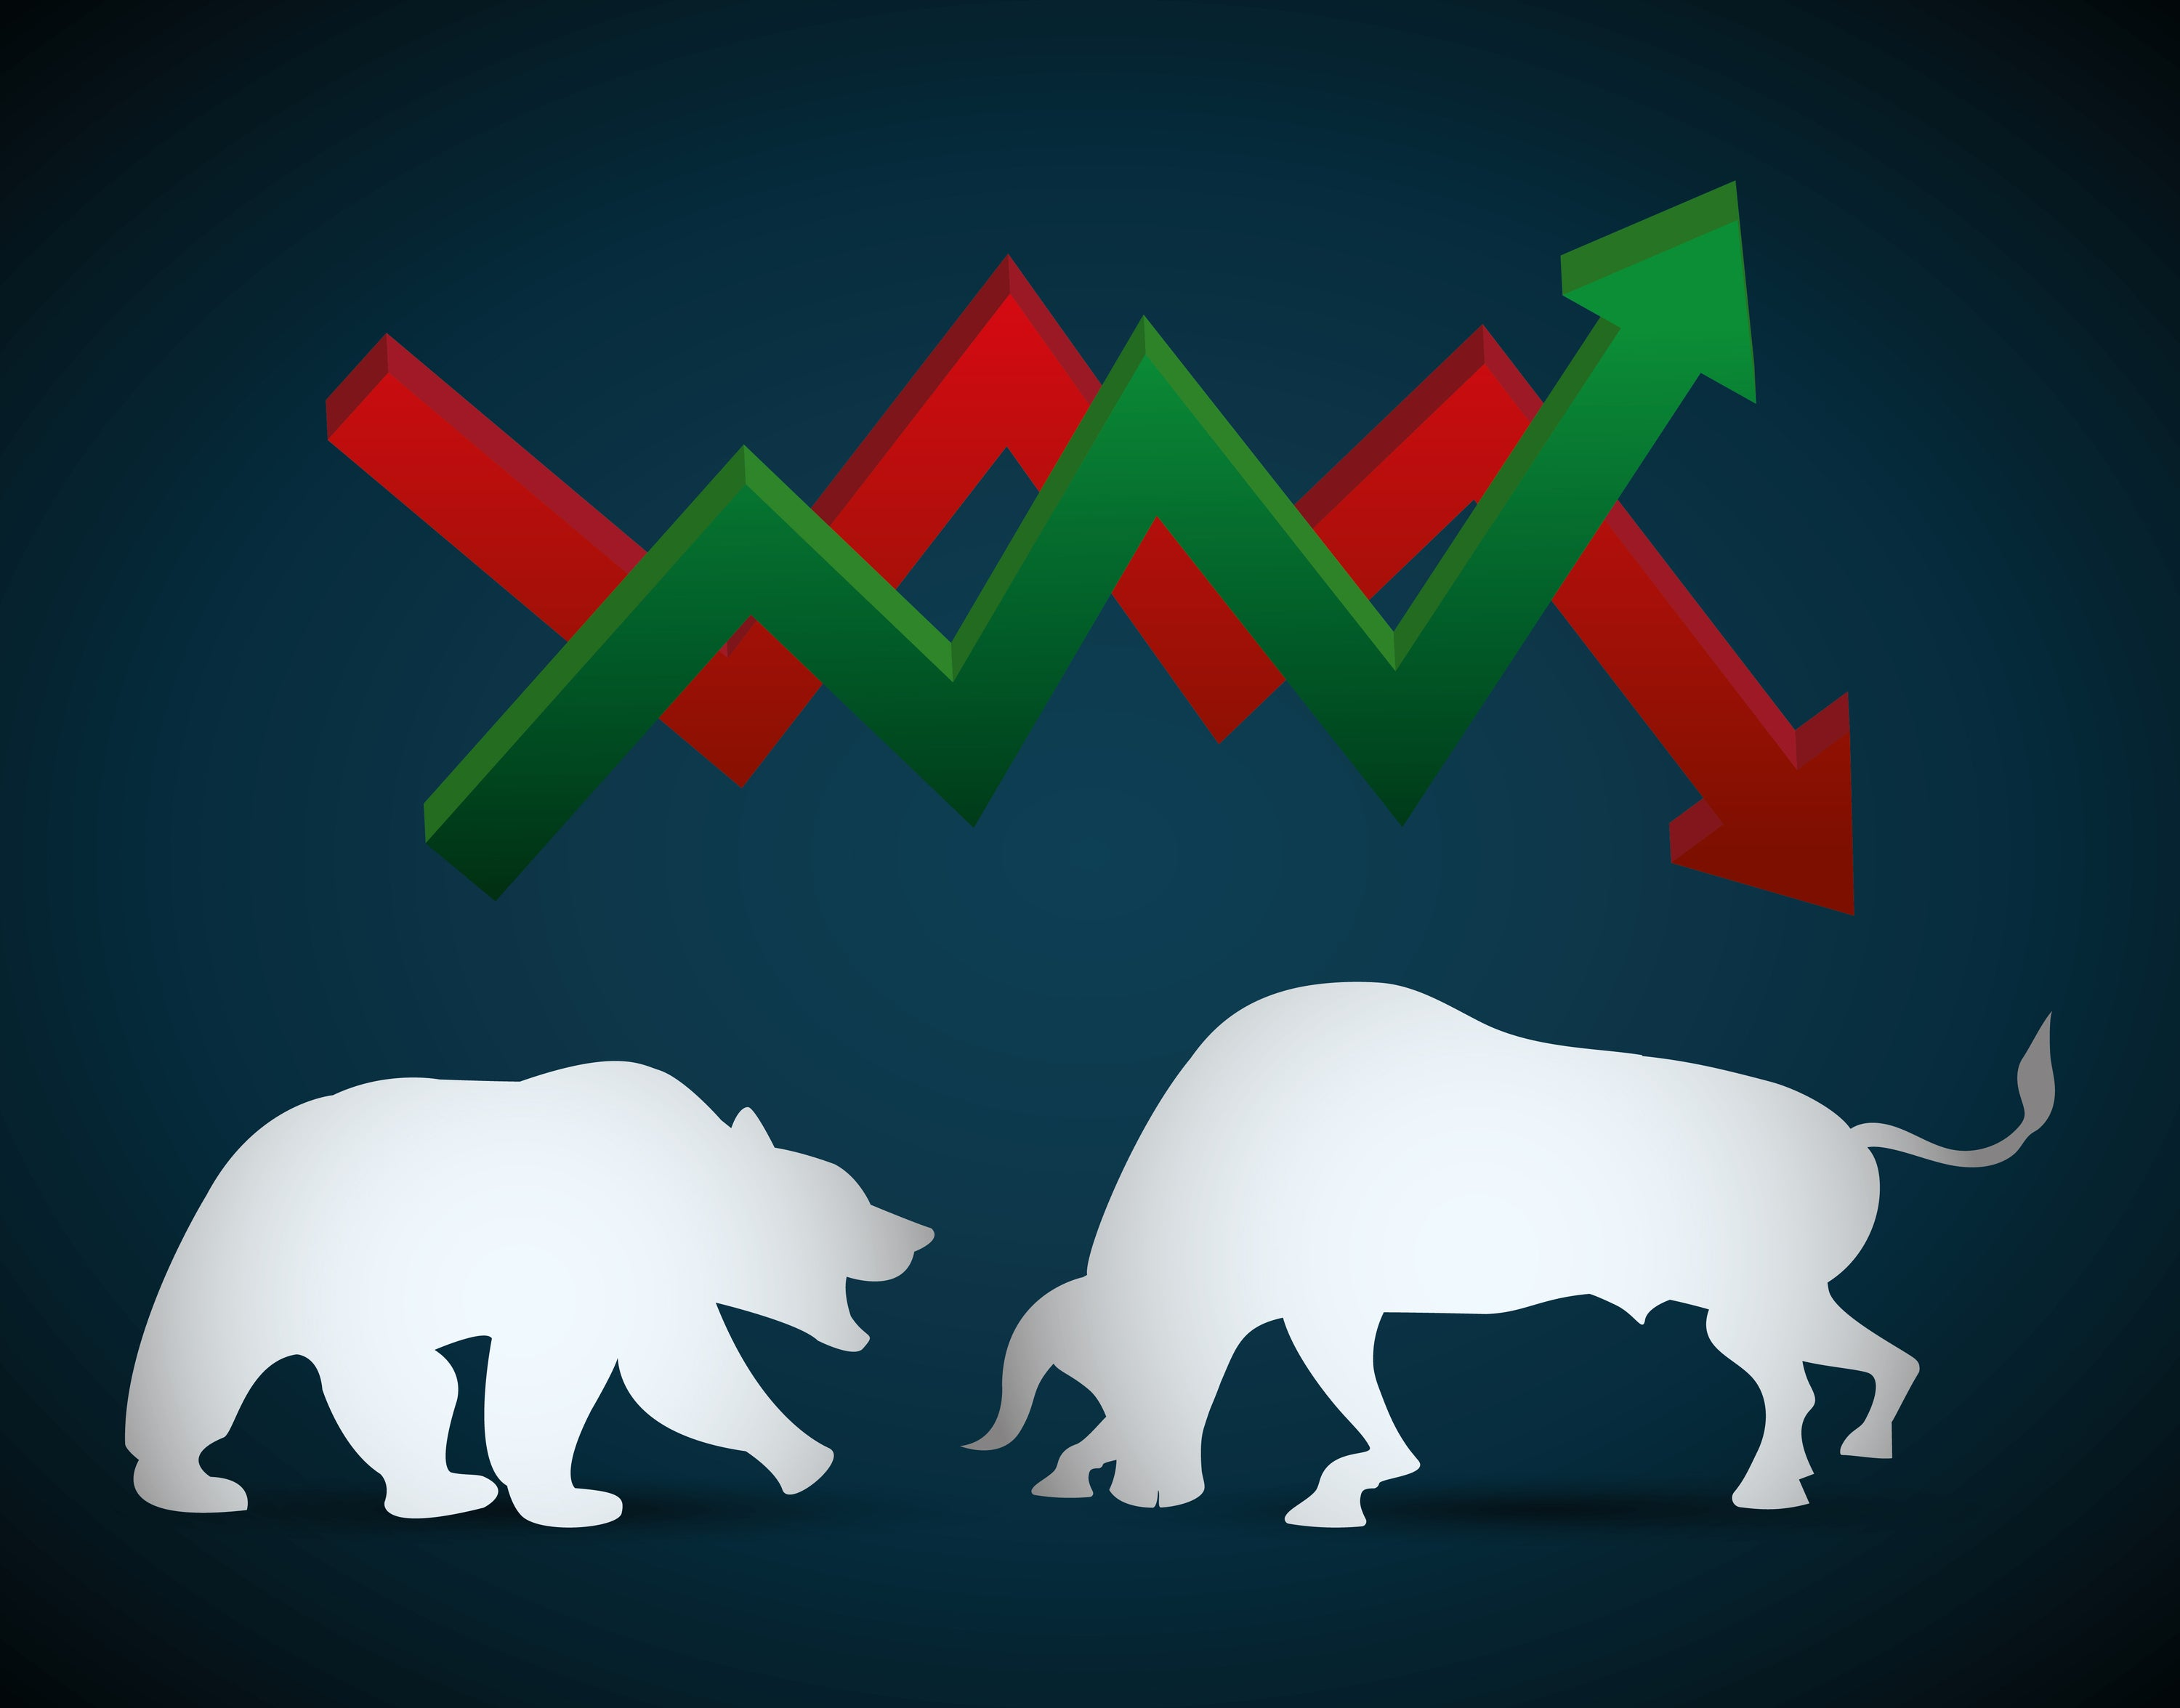 BANR or HFWA: Which Is the Better Value Stock Right Now?